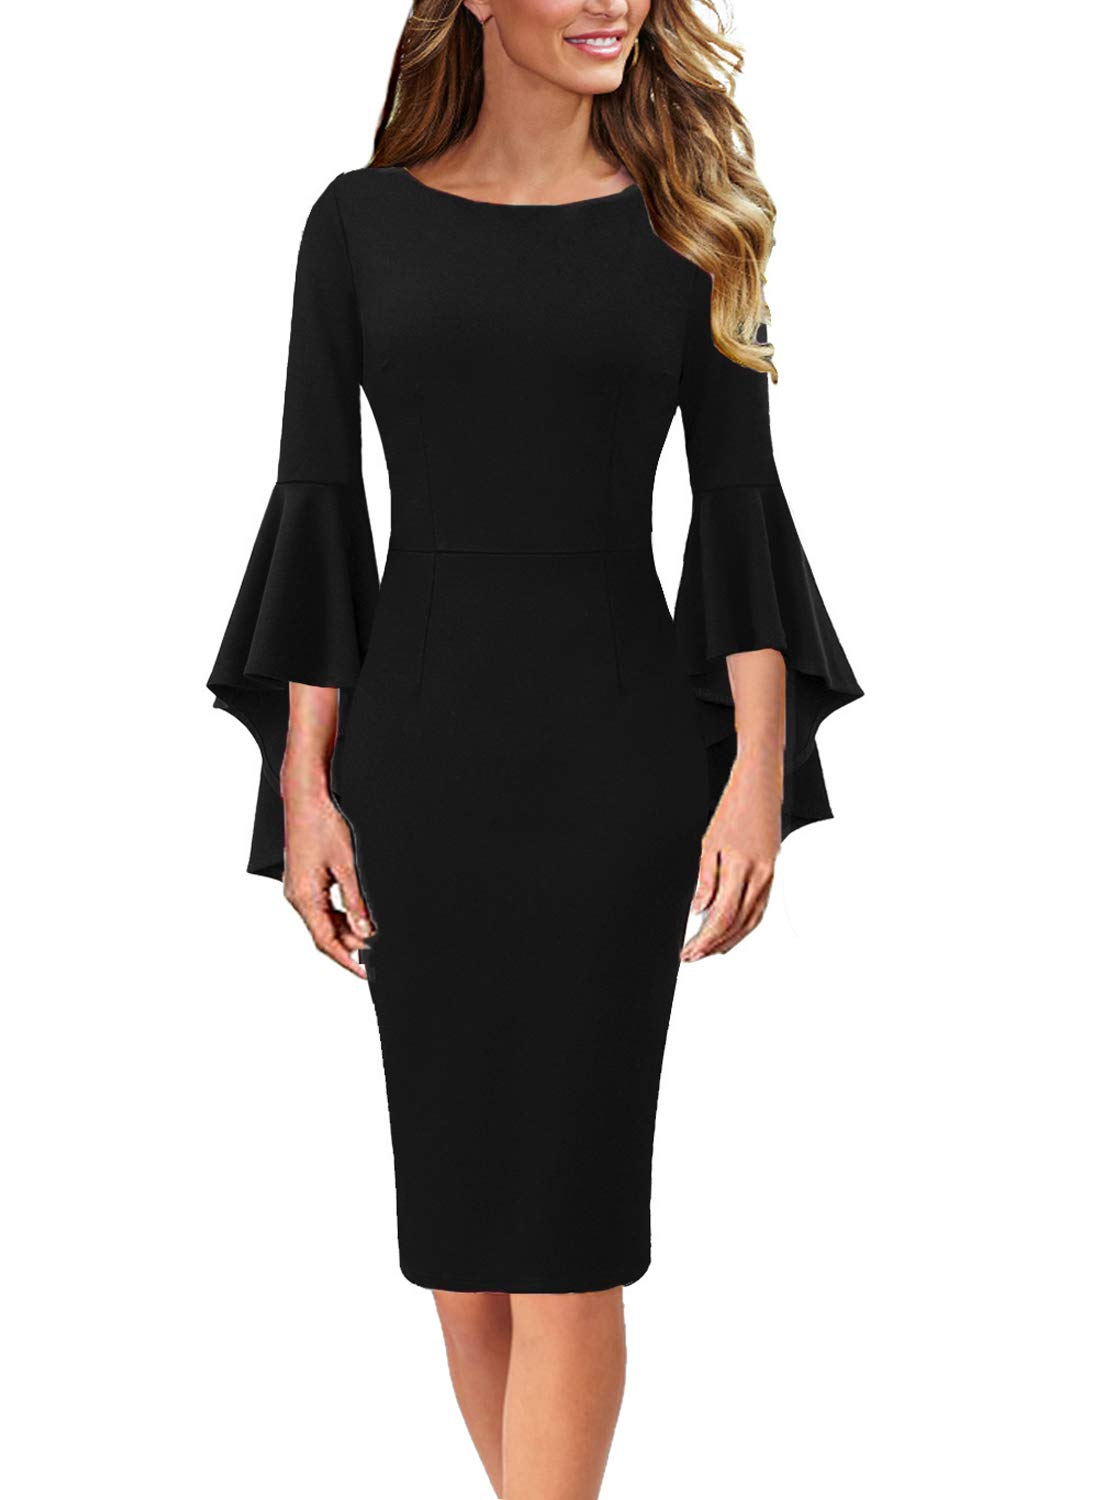 VFSHOW Womens Ruffle Bell Sleeves Business Cocktail Party Bodycon Sheath Dress